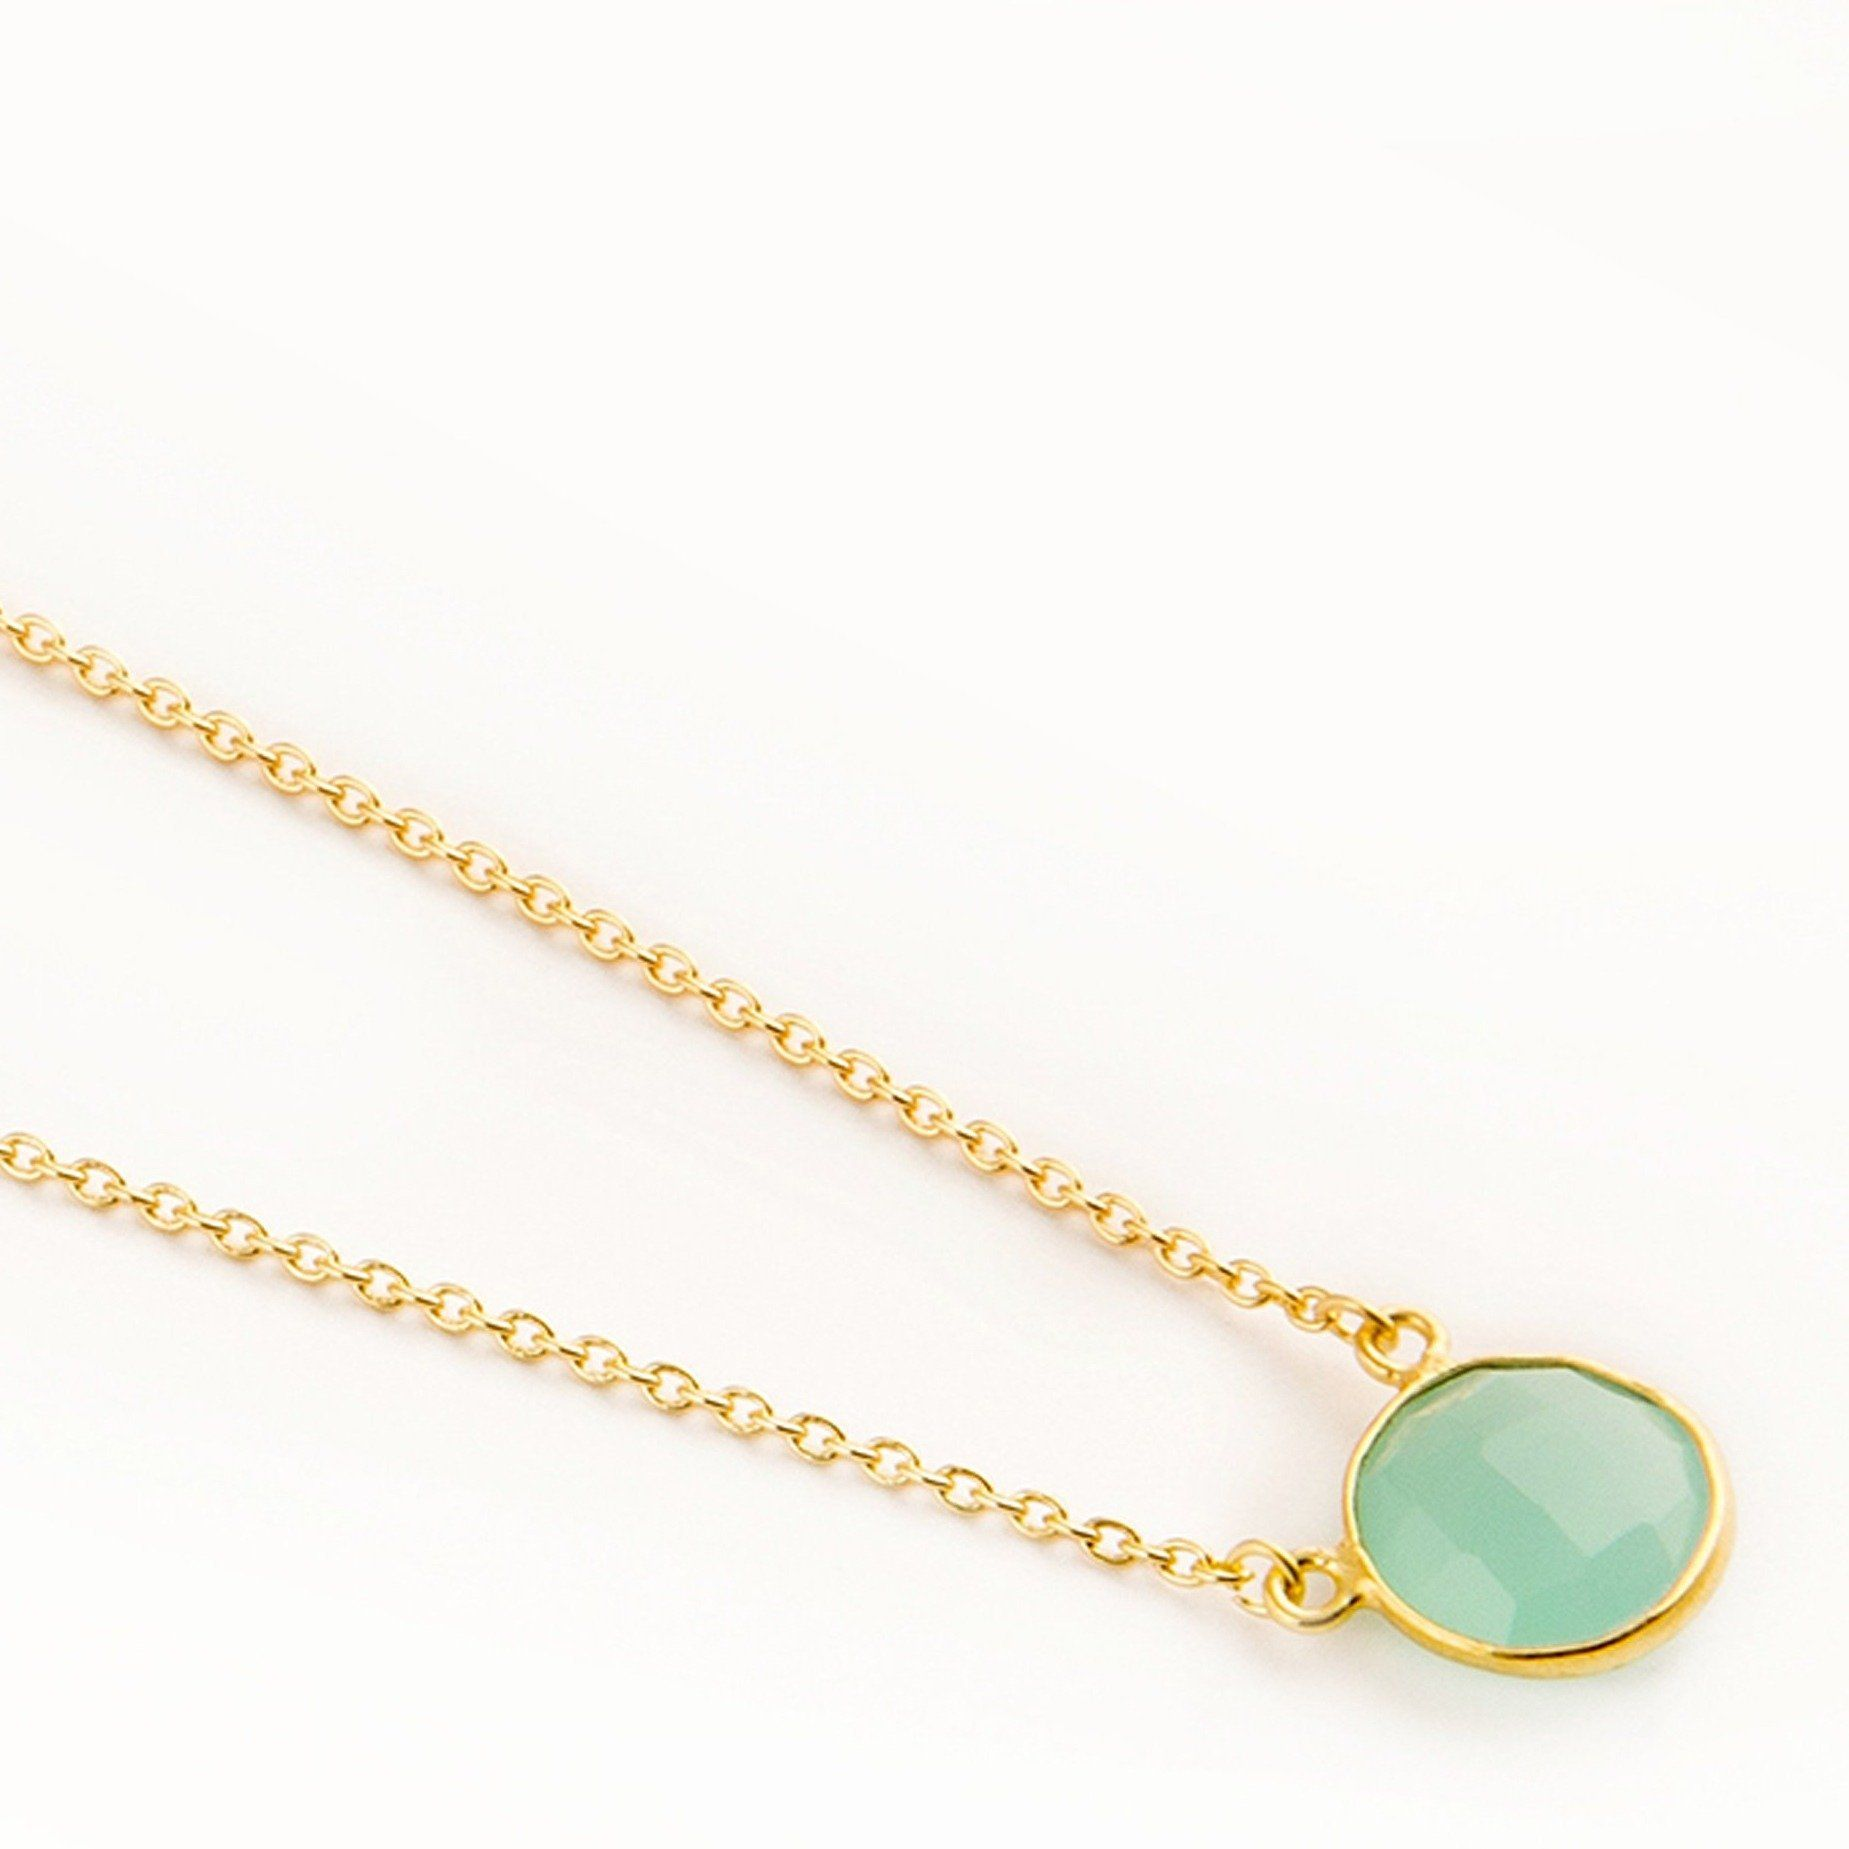 Adele gold-plated silver round chain in Aqua - Neckpieces